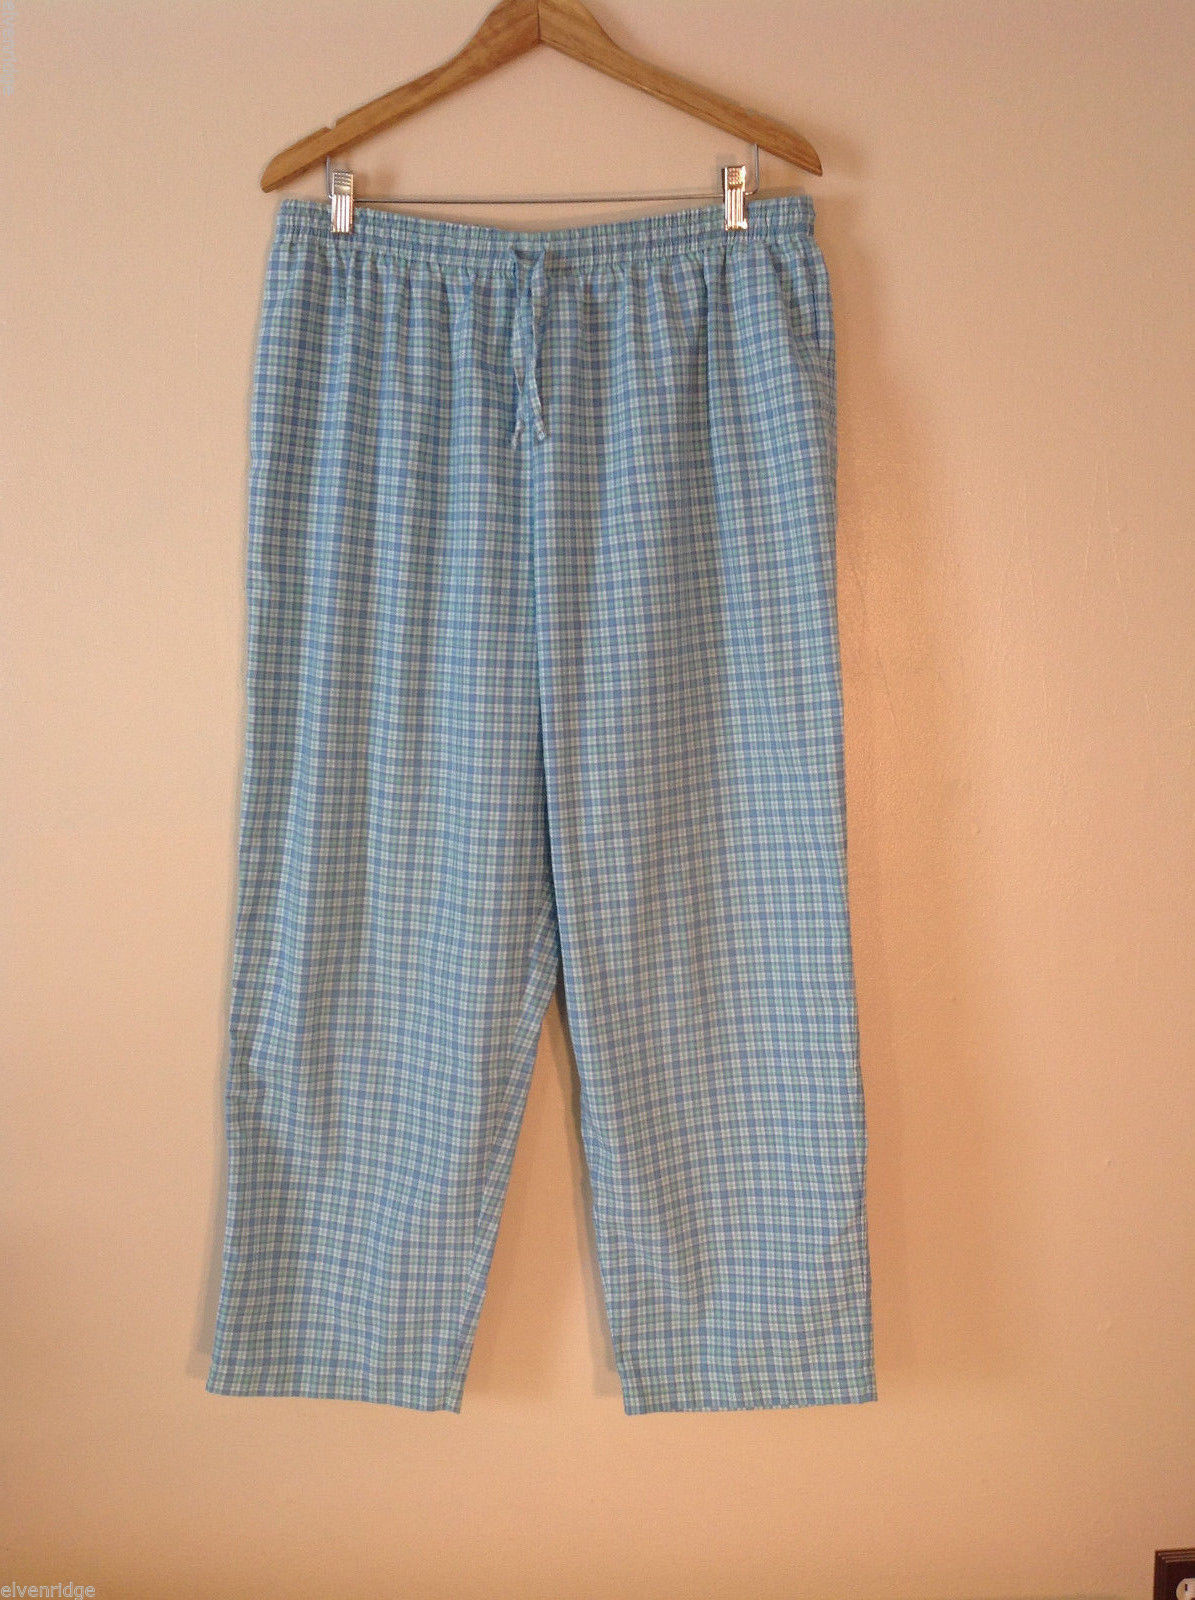 Womens Alfred Dunner plaid pull on pants elastic waist size 20w